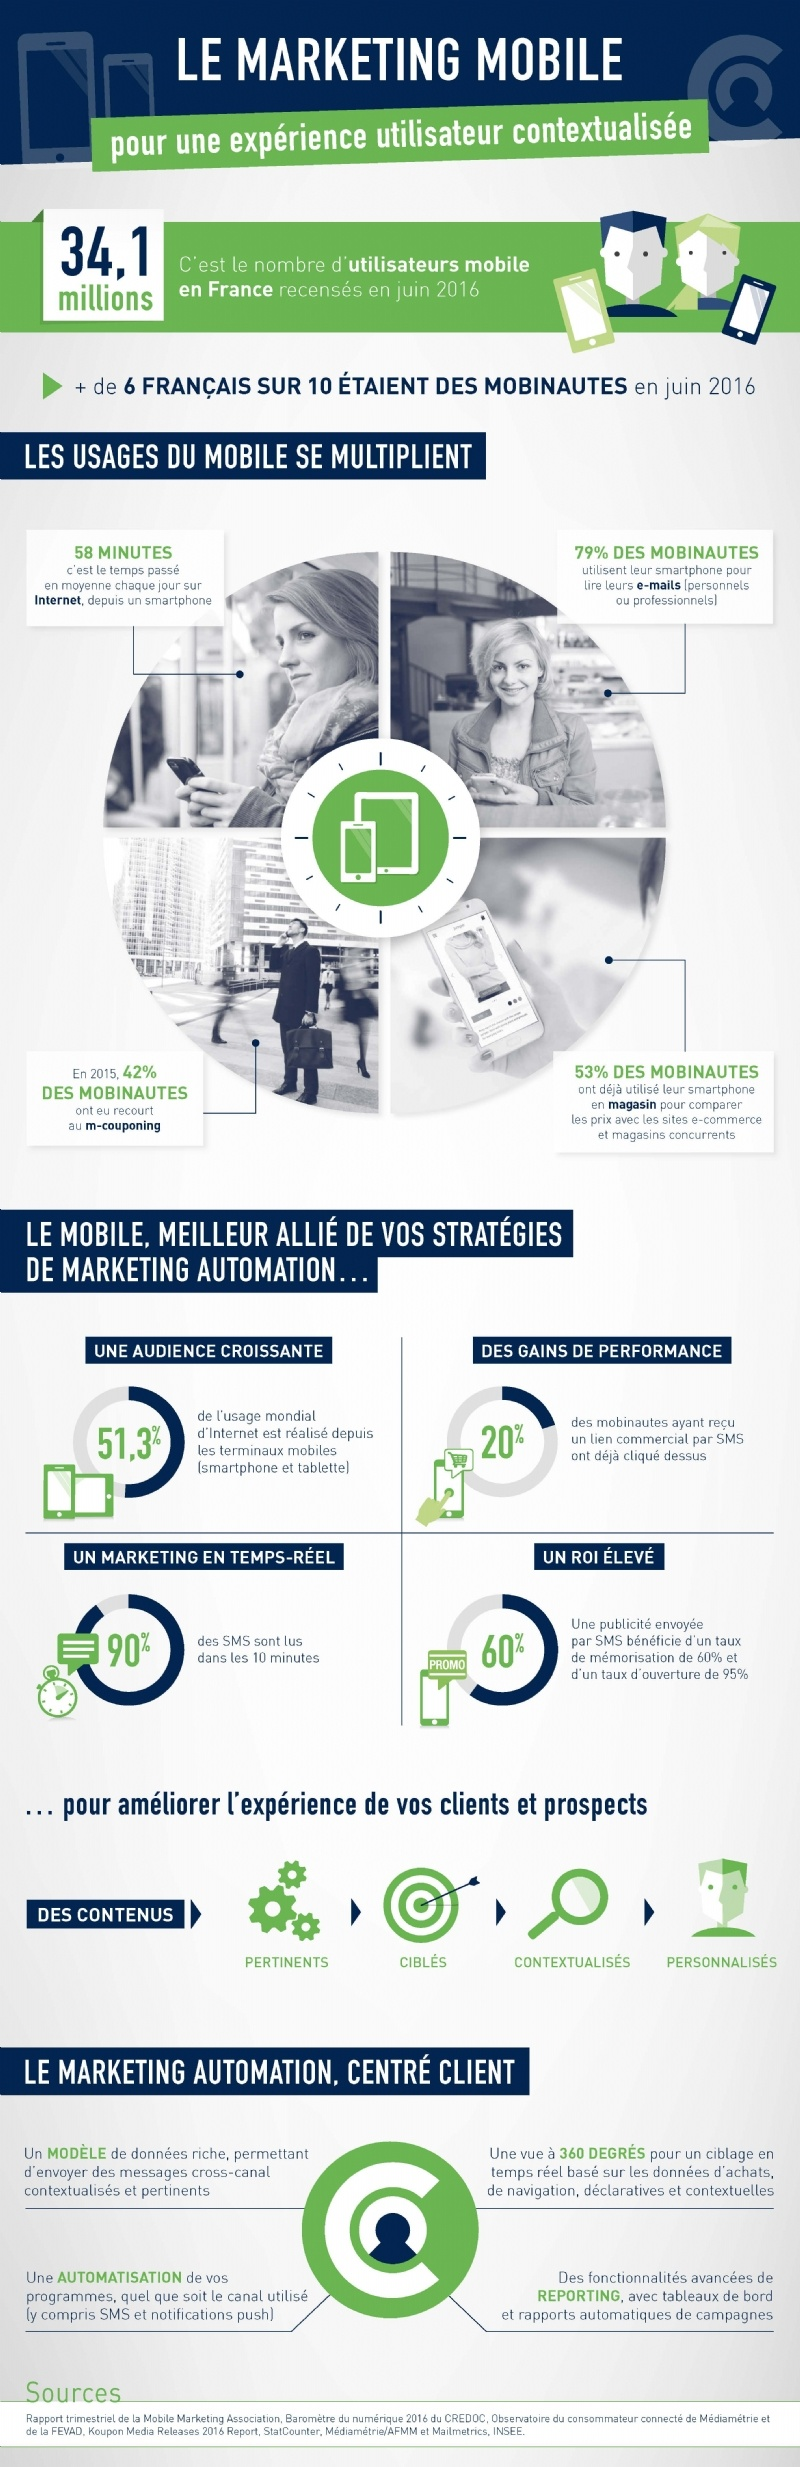 Marketing-mobile-taux-ouverture-SMS-F